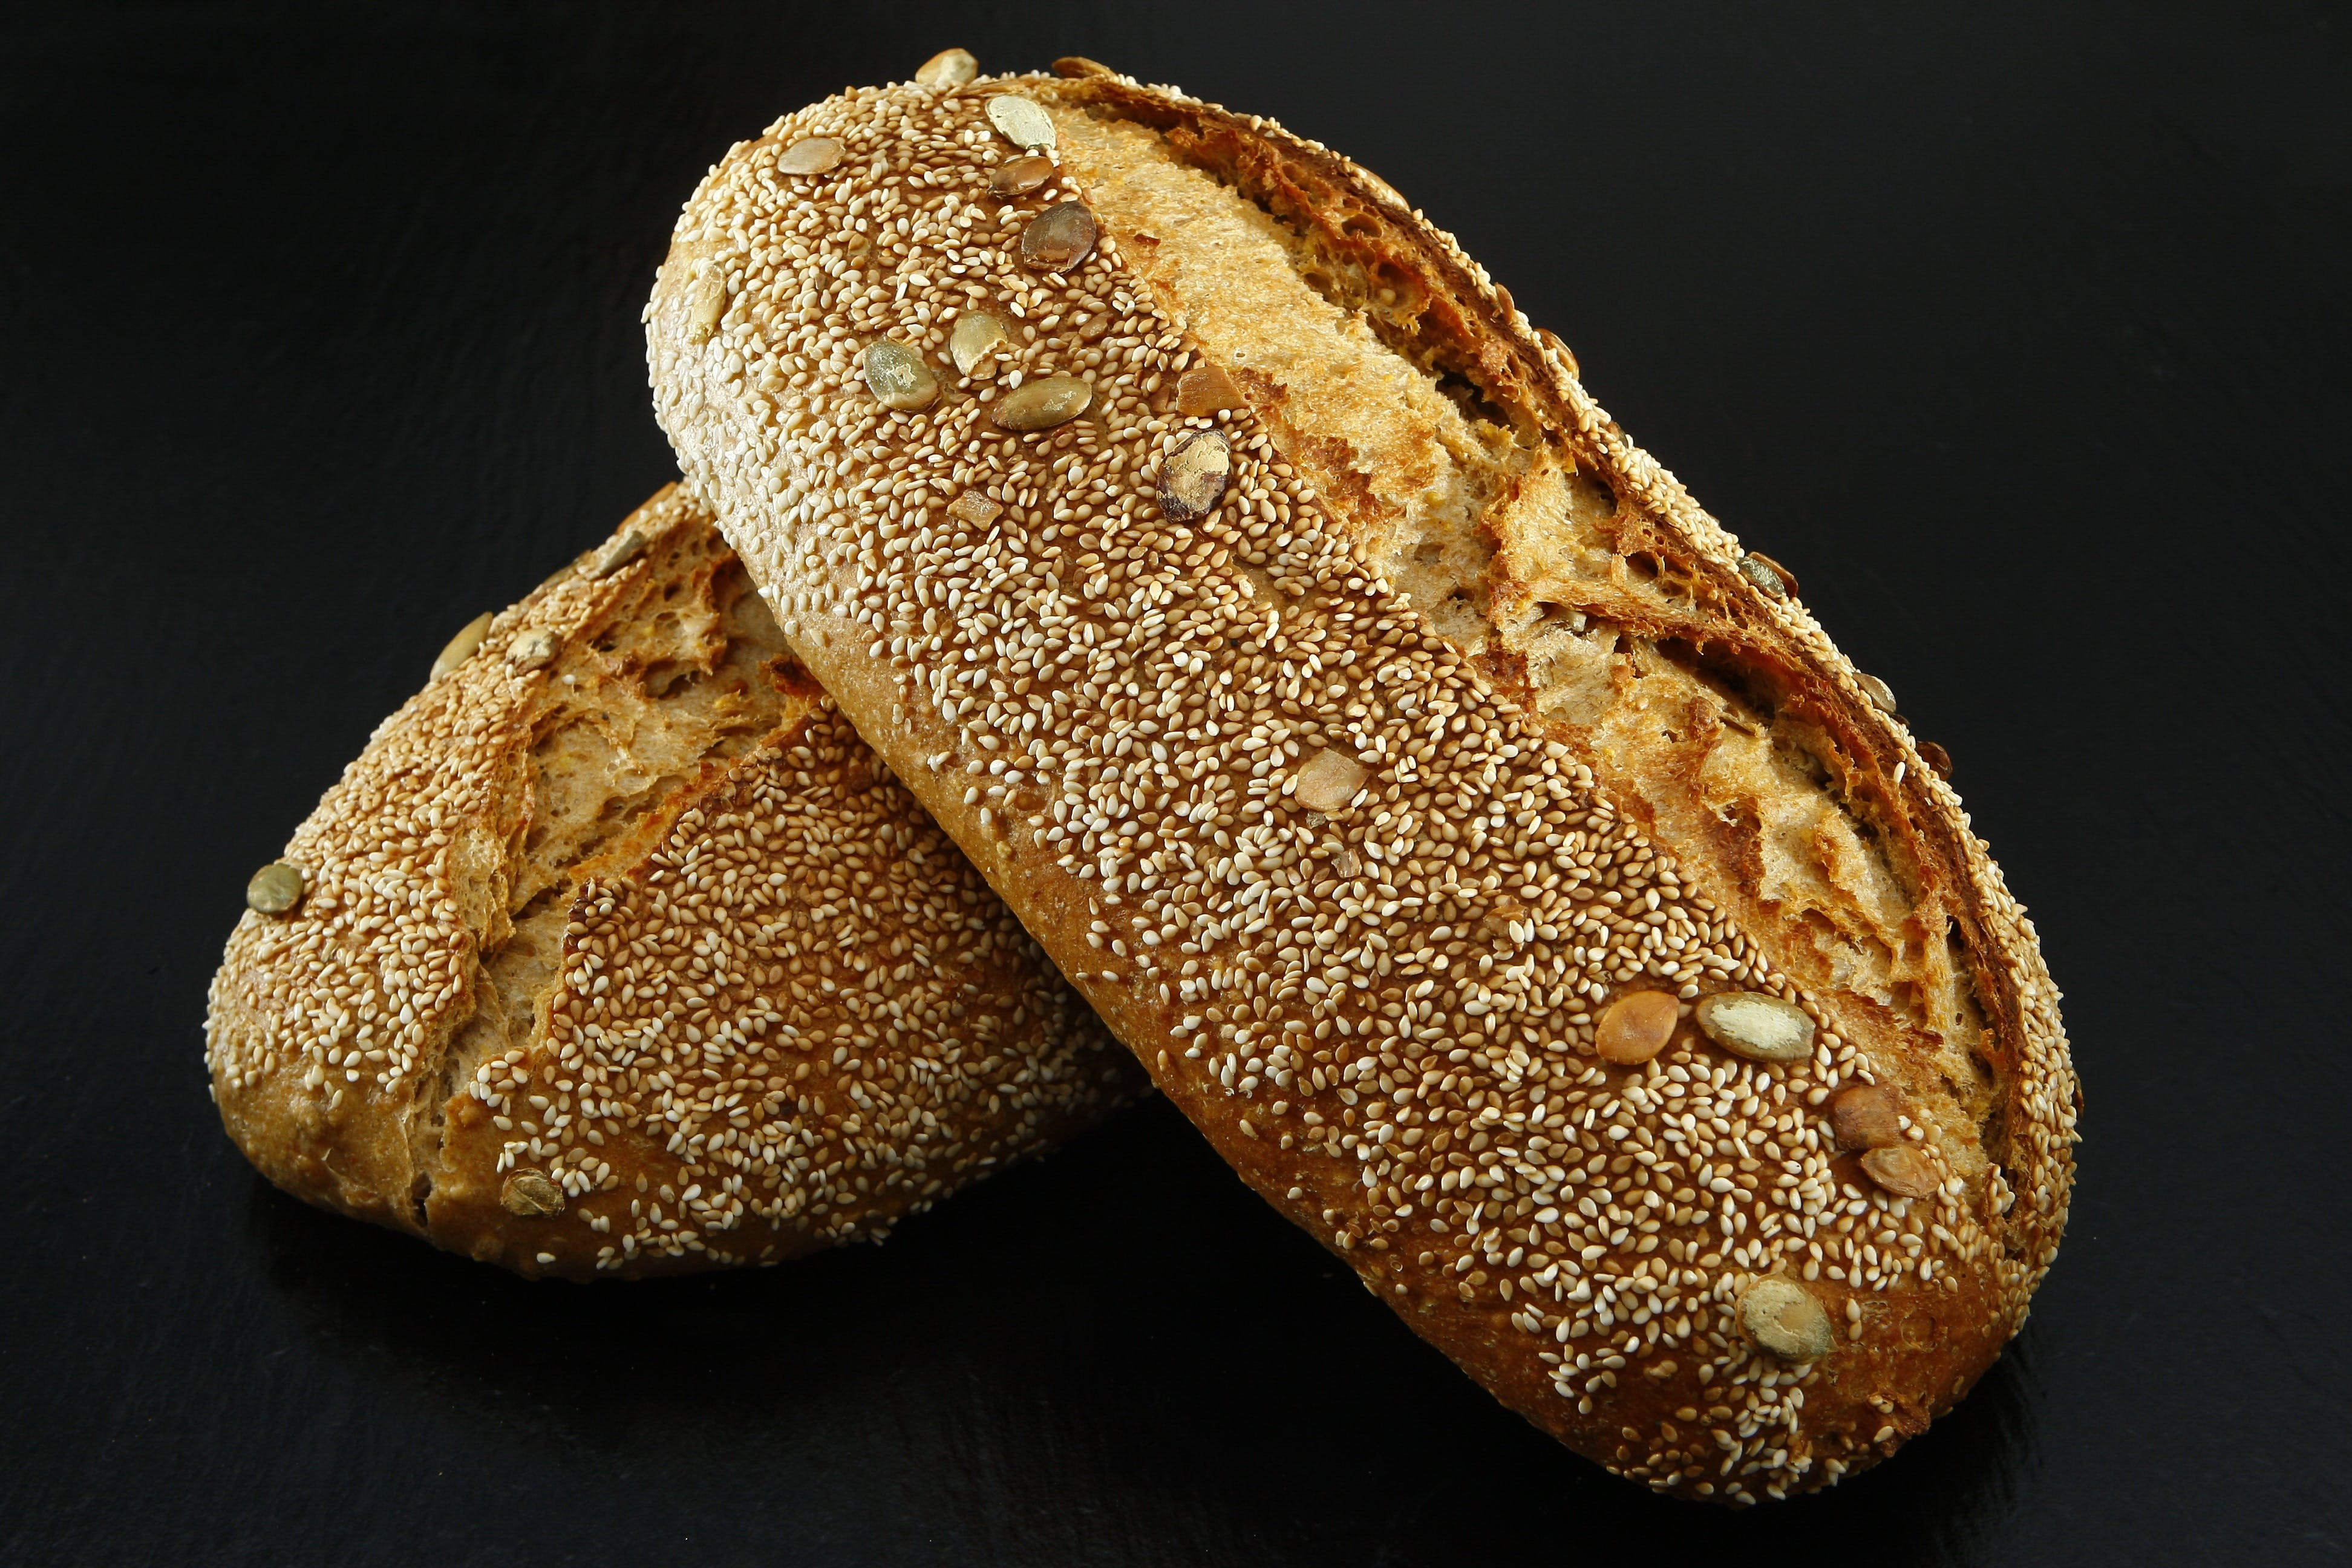 Focus Photography of Sprinkled Bread